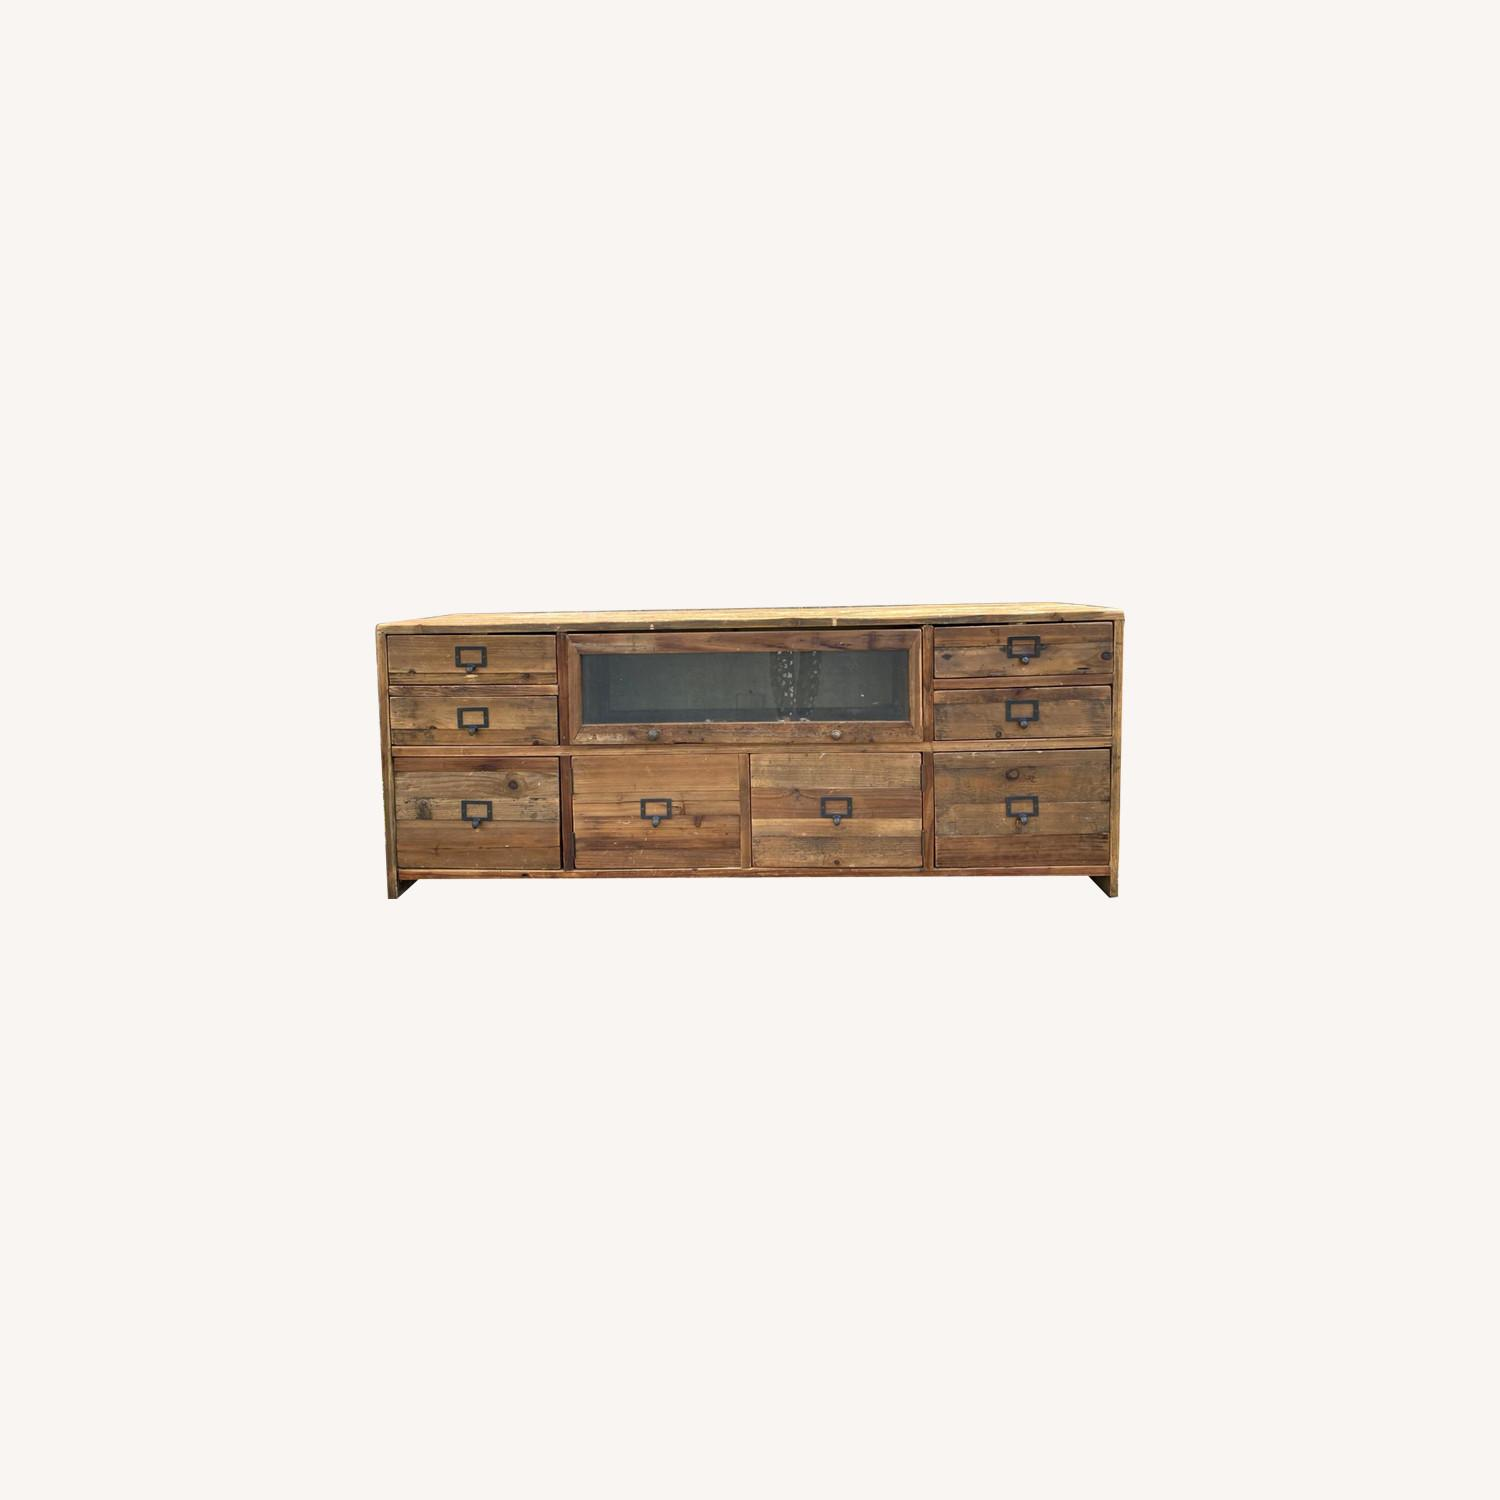 Crate & Barrel Reclaimed Wood Media Console - image-0